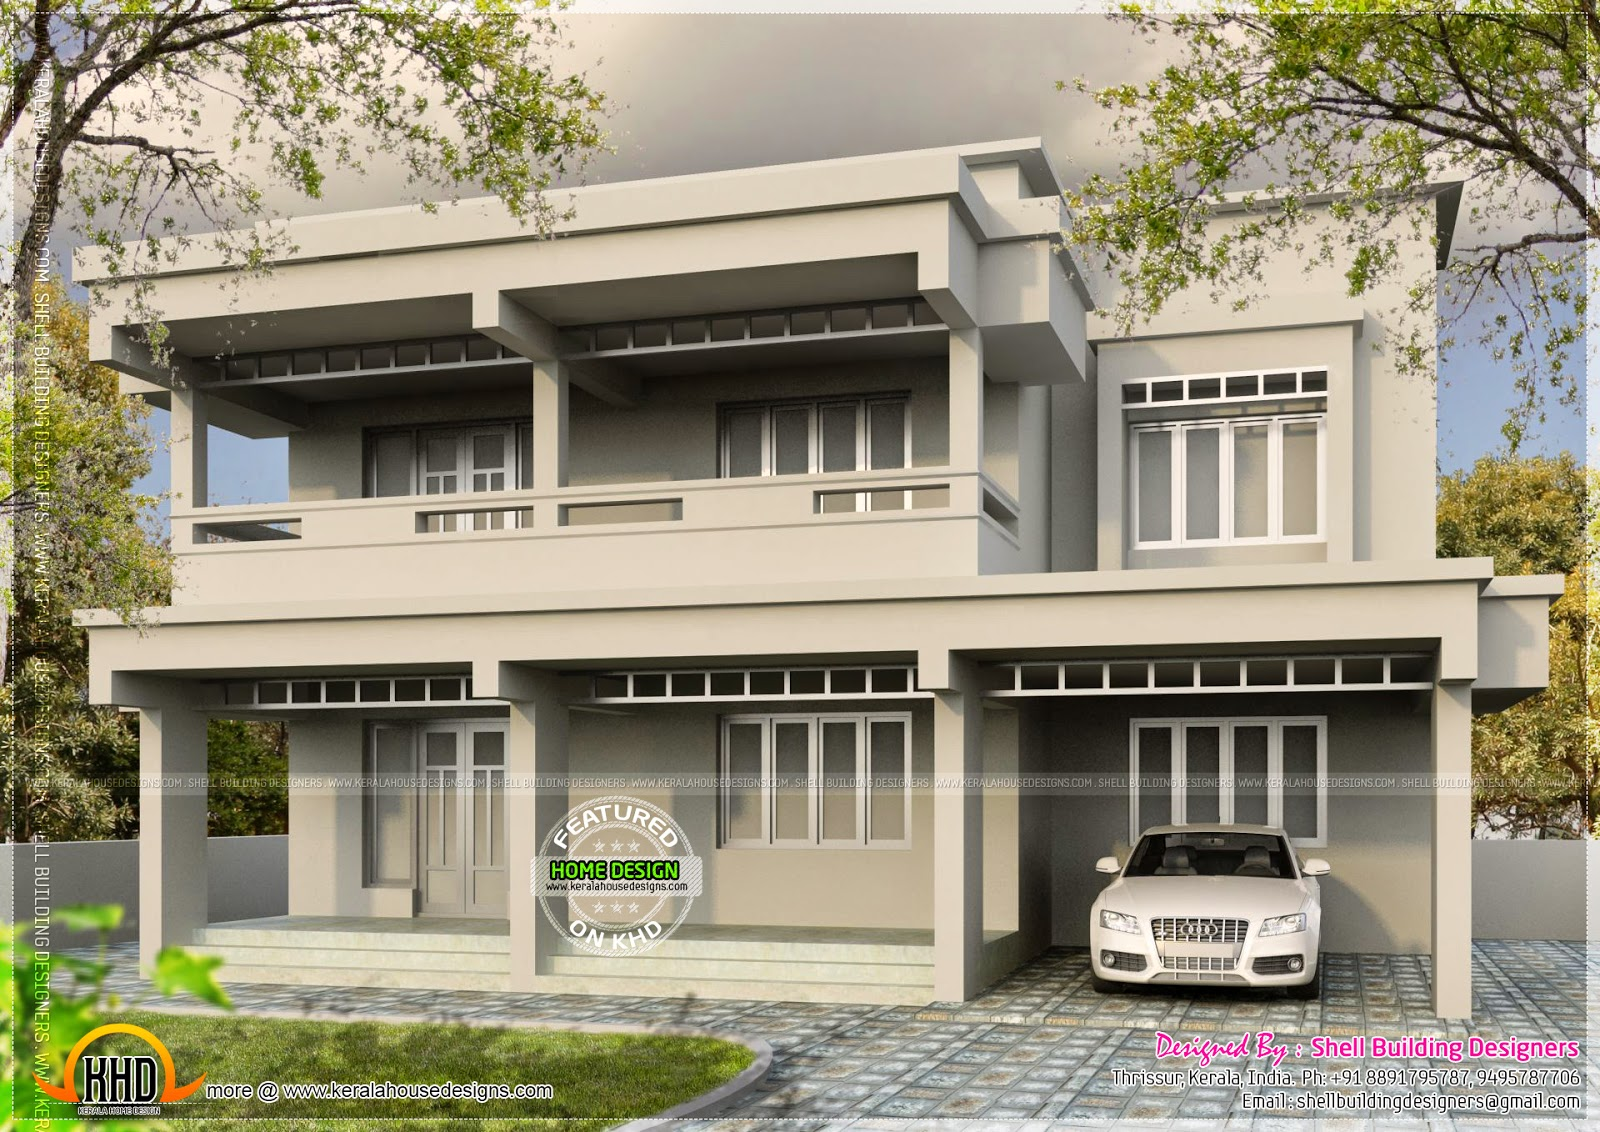 Flat roof 2500 square feet house kerala home design and for 2500 sq ft house plans in kerala